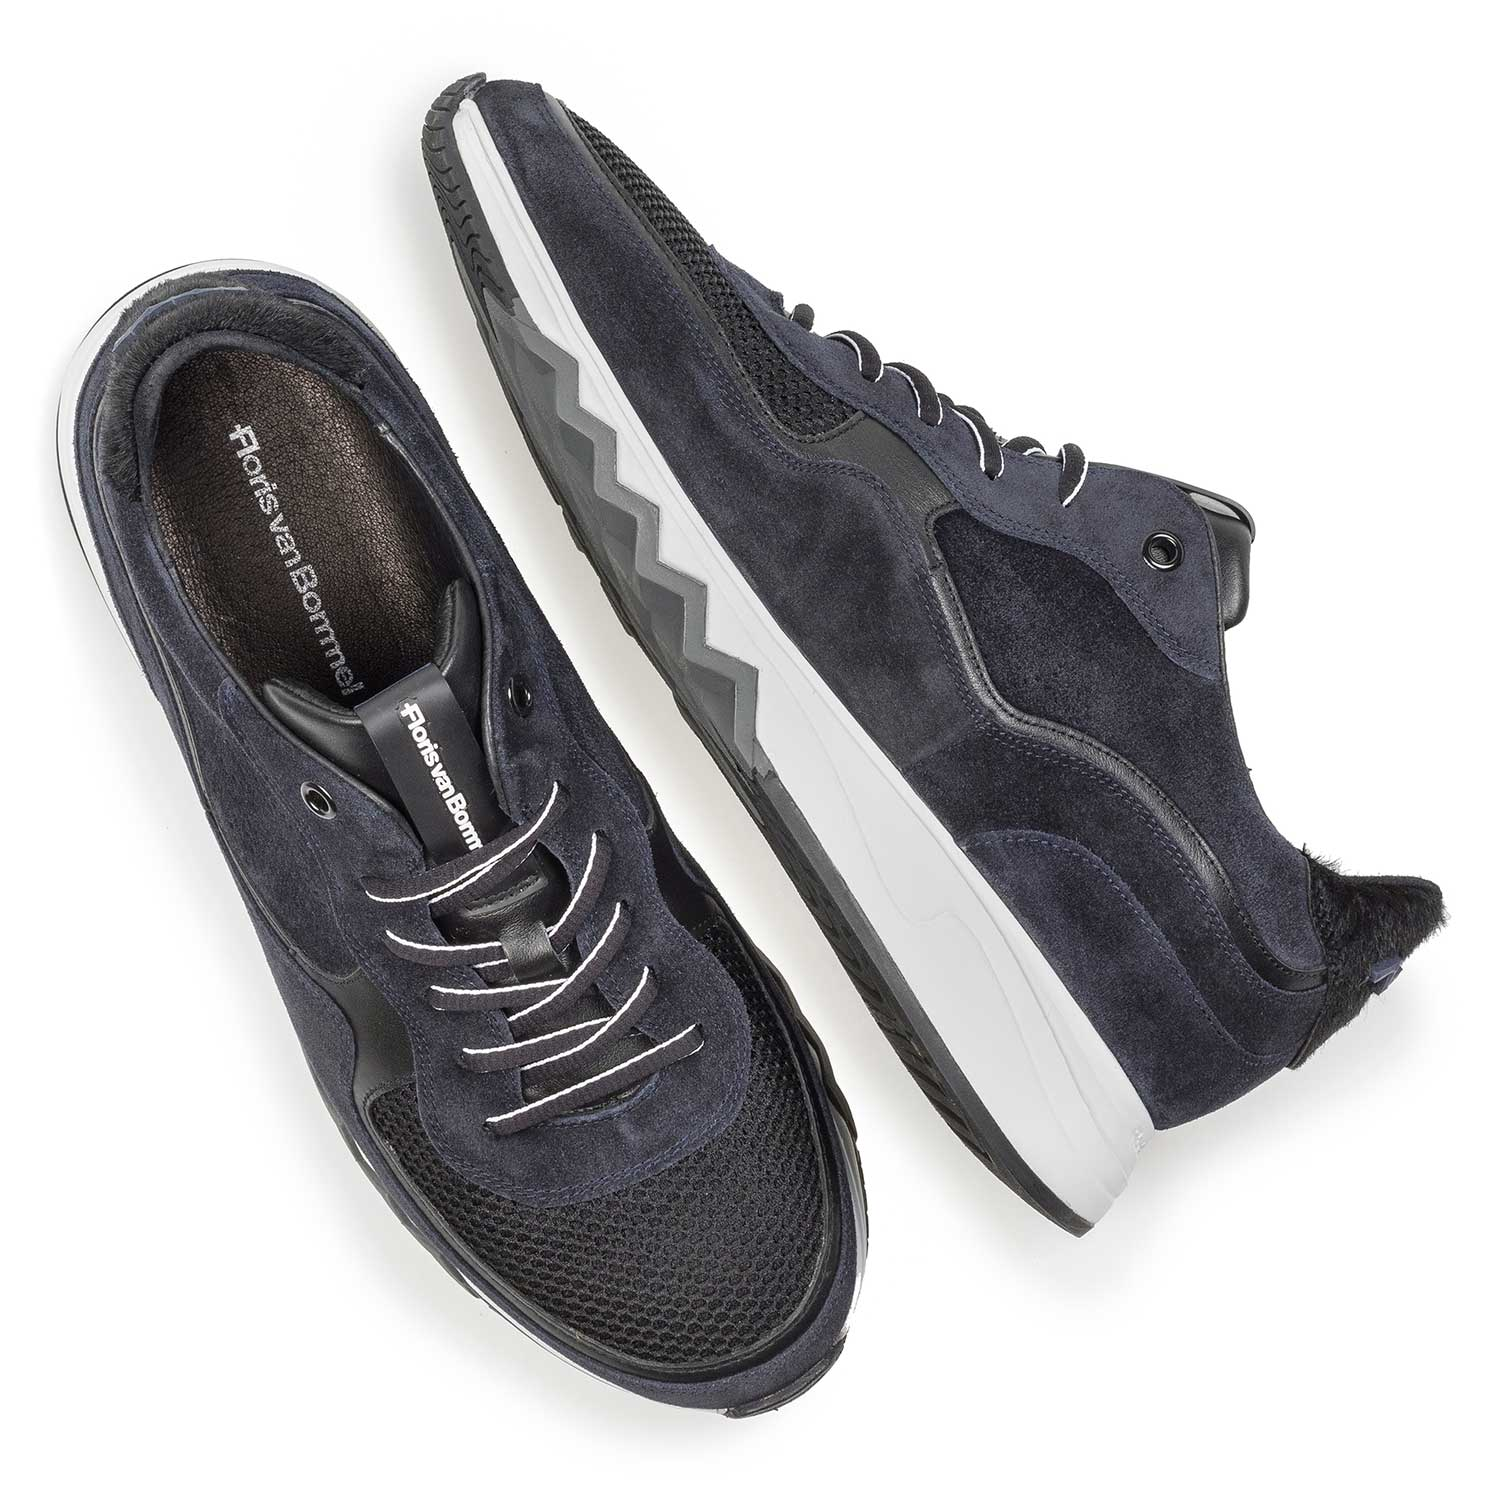 16093/17 - Dark blue suede leather sneaker